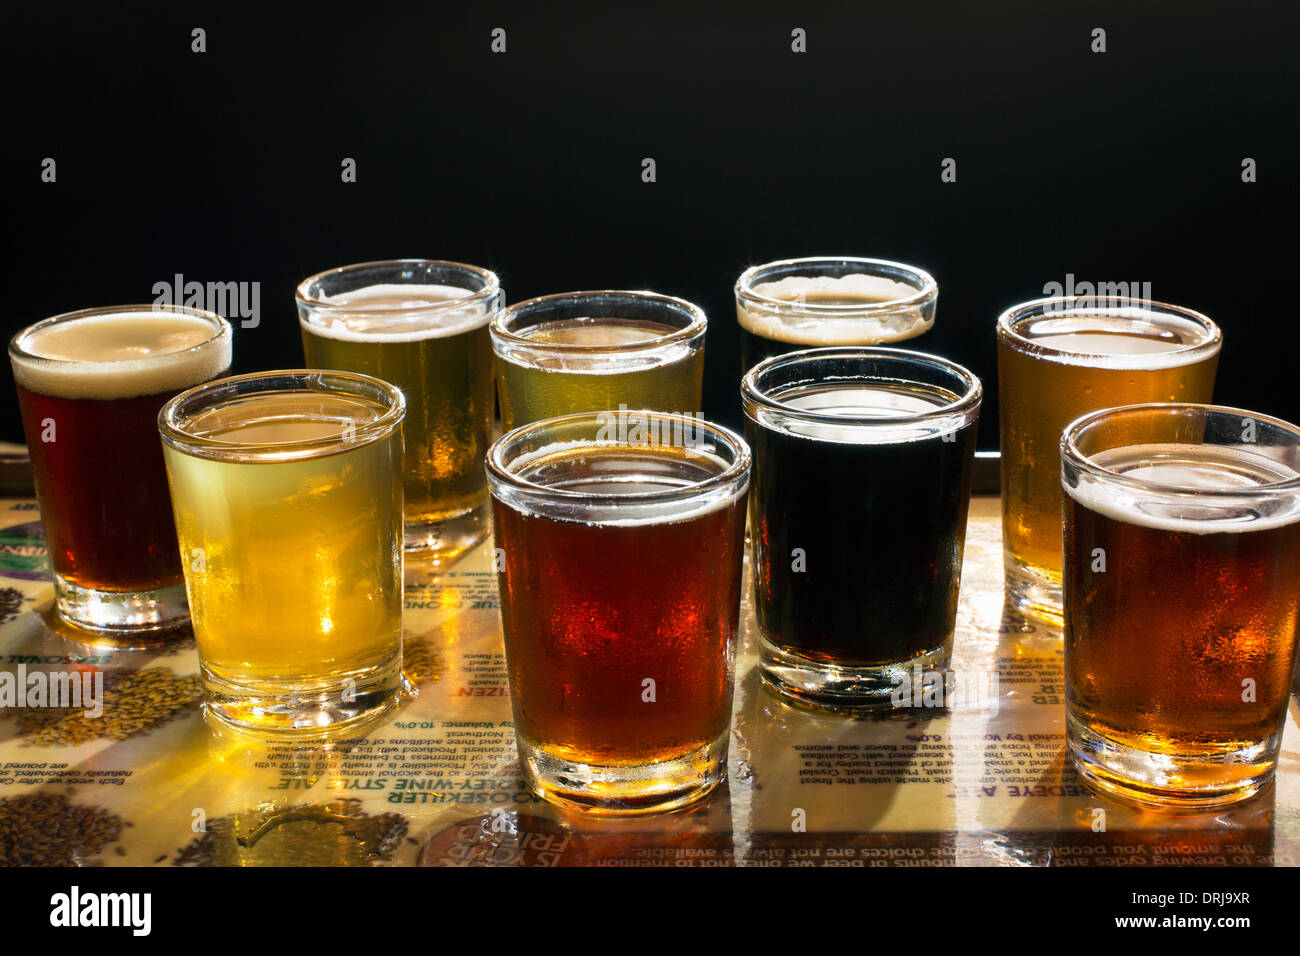 flight of beers served in a brew pub - Stock Image